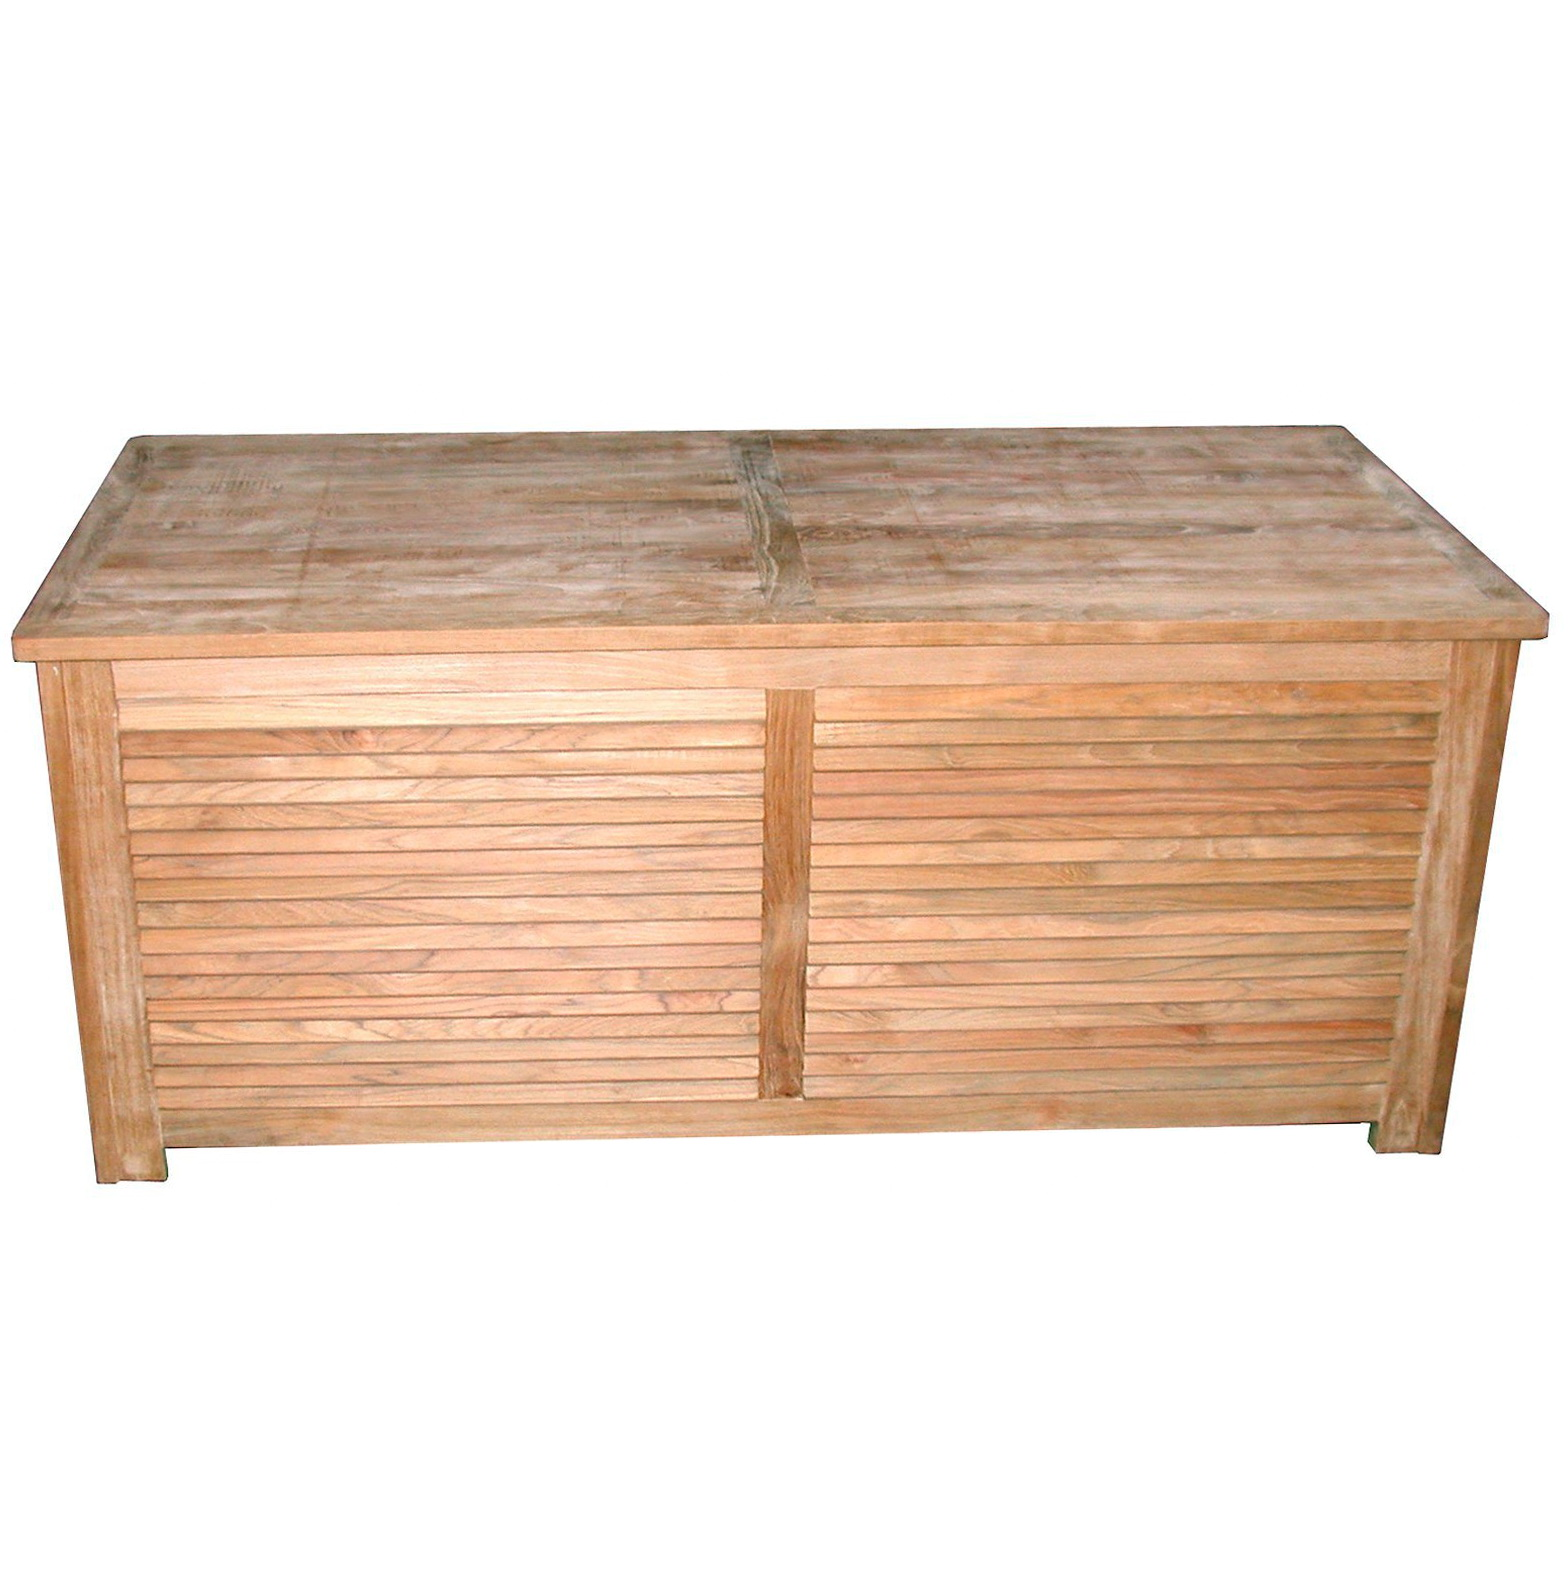 Rubbermaid Storage Bench Home Depot